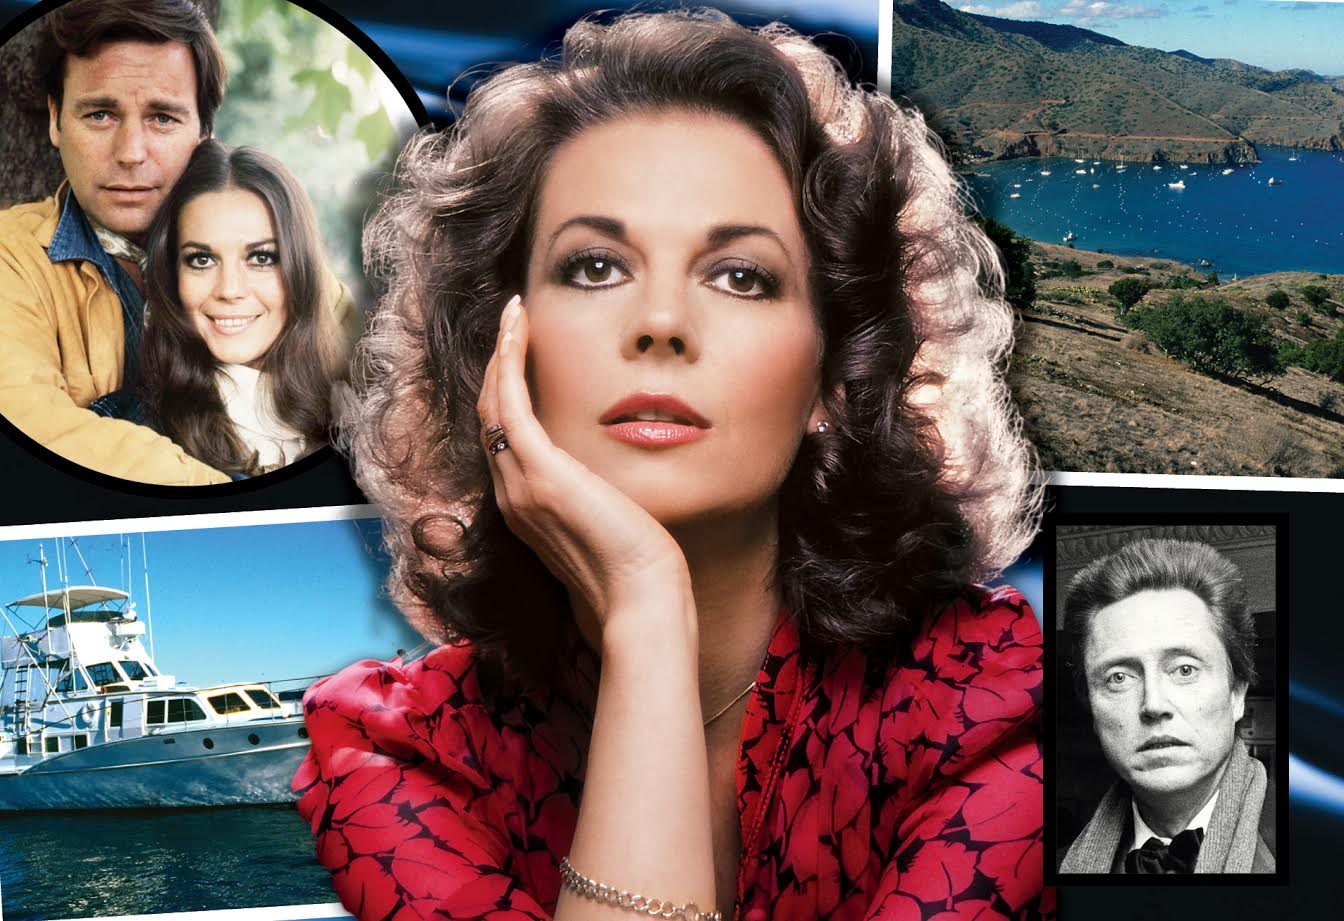 lana-wood-natalie-wood-interview-pdocast-all-rise